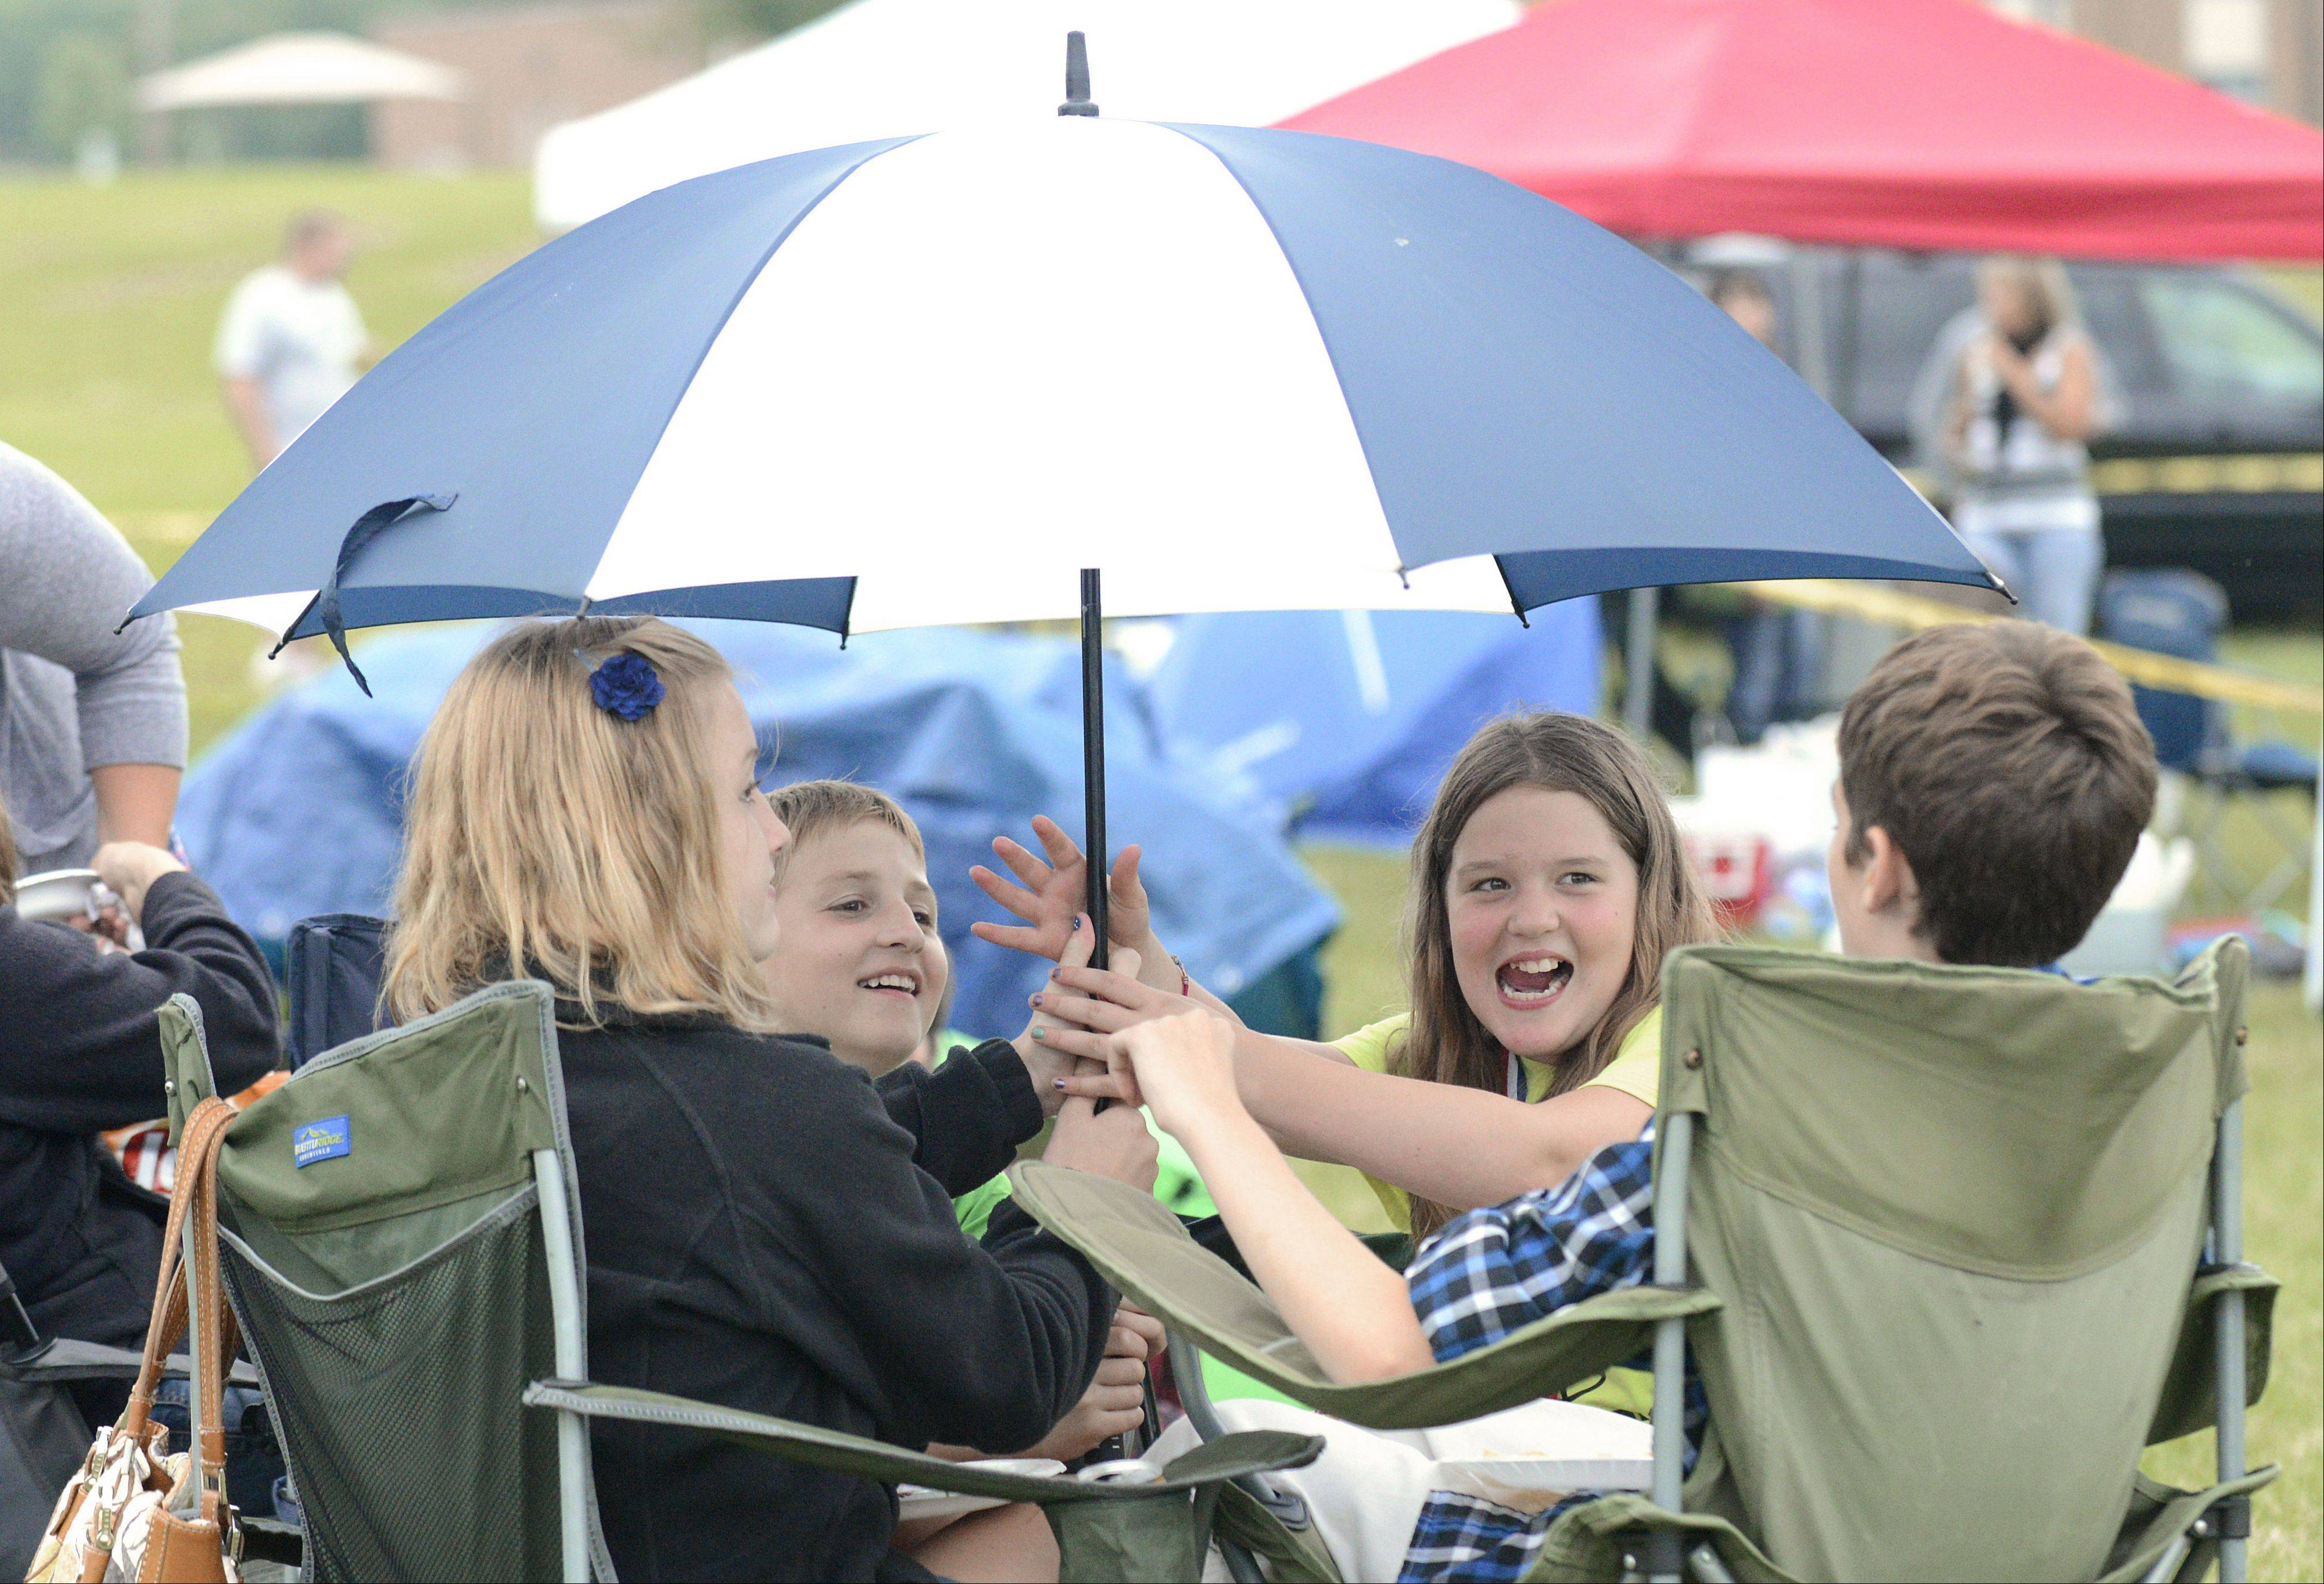 Gracie Strader, 10, of Geneva laughs as their umbrella bops her big brother, Colin, 13, on the head. Gracie, Colin, and friends Hannah Schwichtenberg, 13, and her brother Connor, 10, all of Genoa, huddled under the umbrella prior to the planned fireworks at Burlington Township Park.